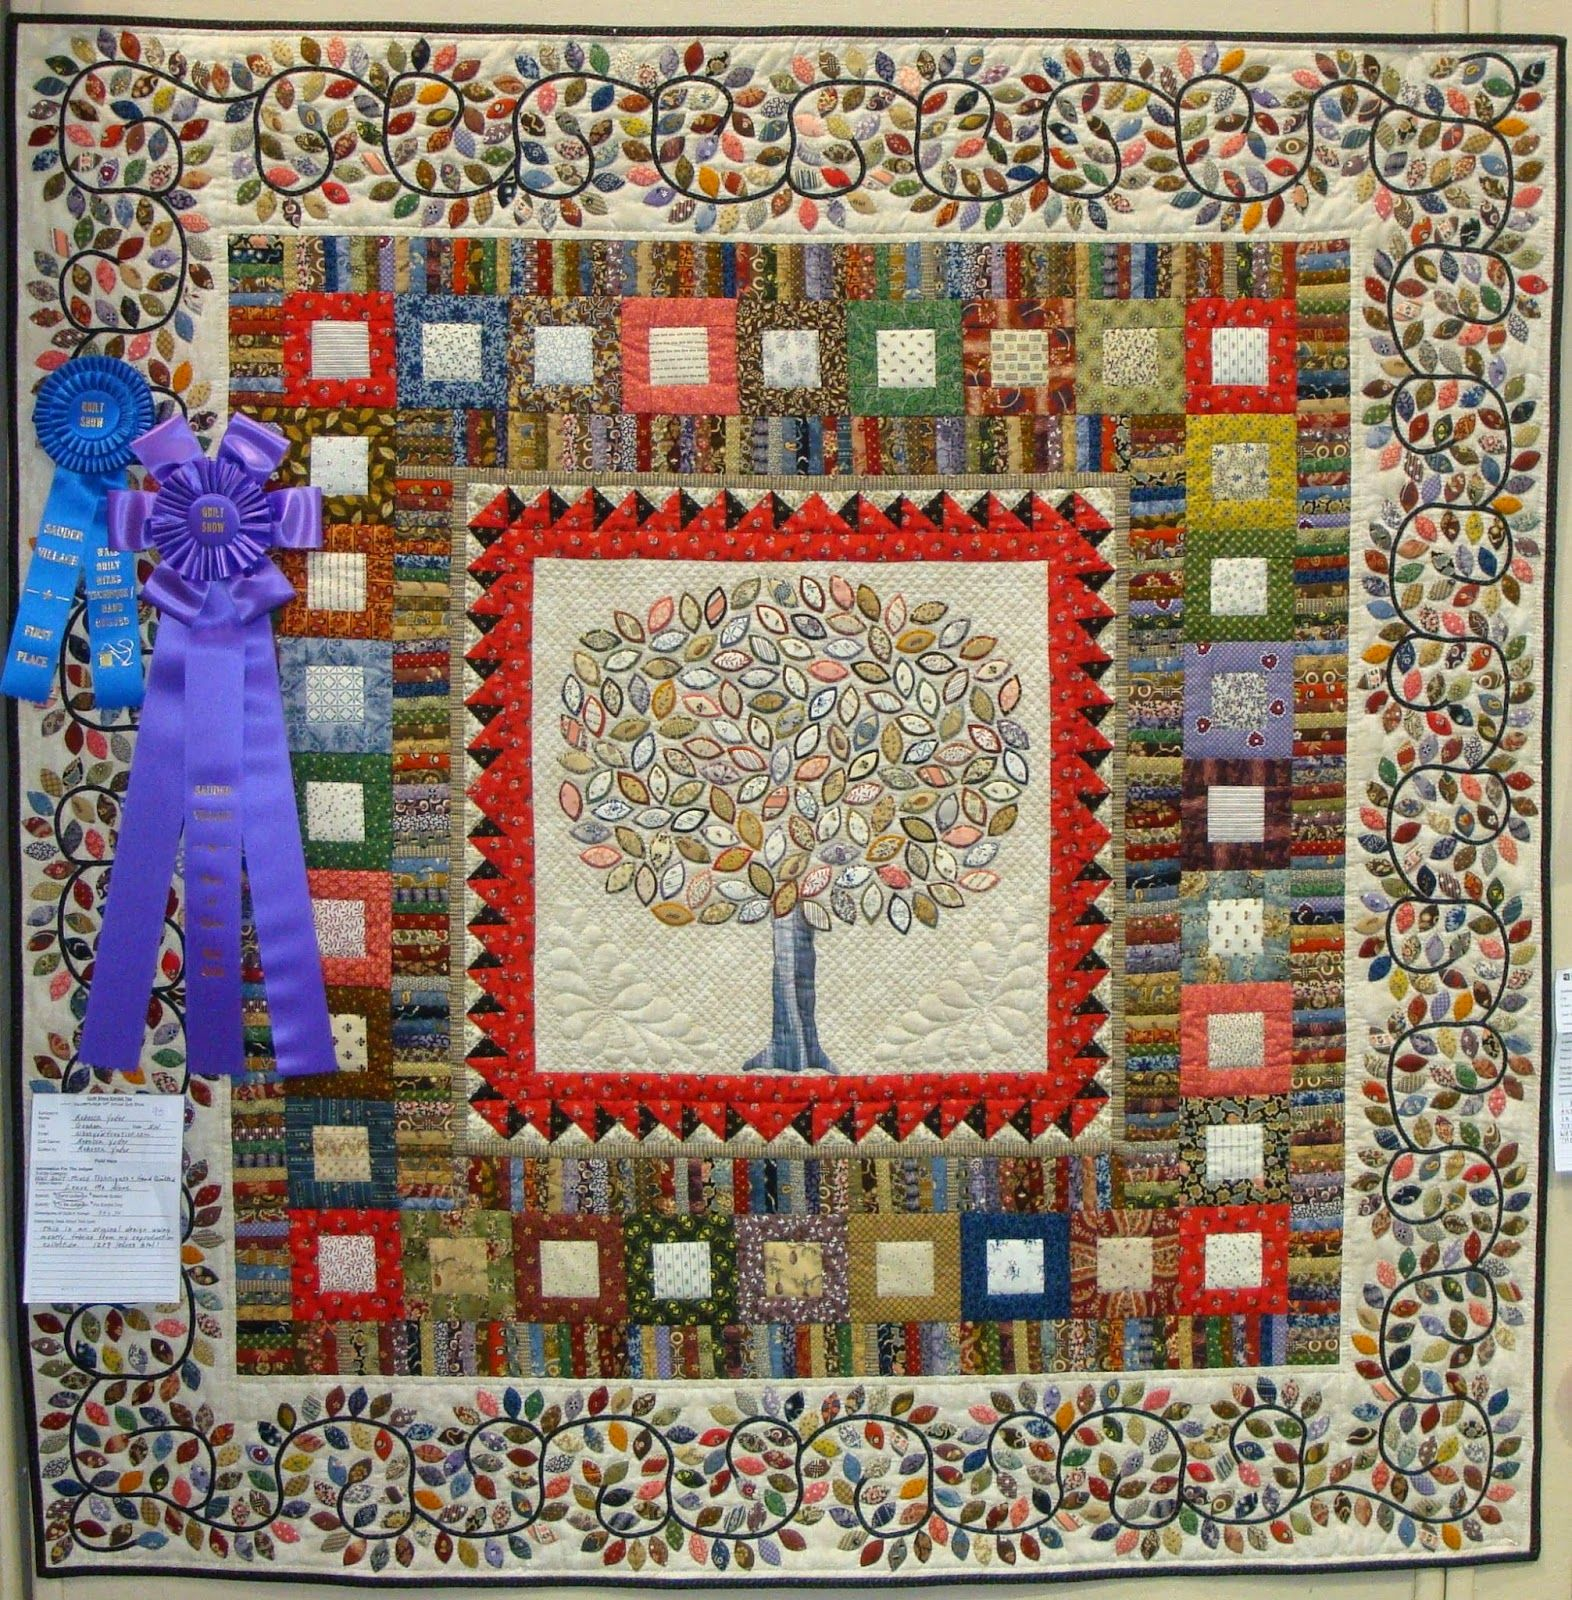 FABRIC THERAPY: Sauder Village Quilt Show: Part One... | Quilting ... : sauder village quilt show - Adamdwight.com